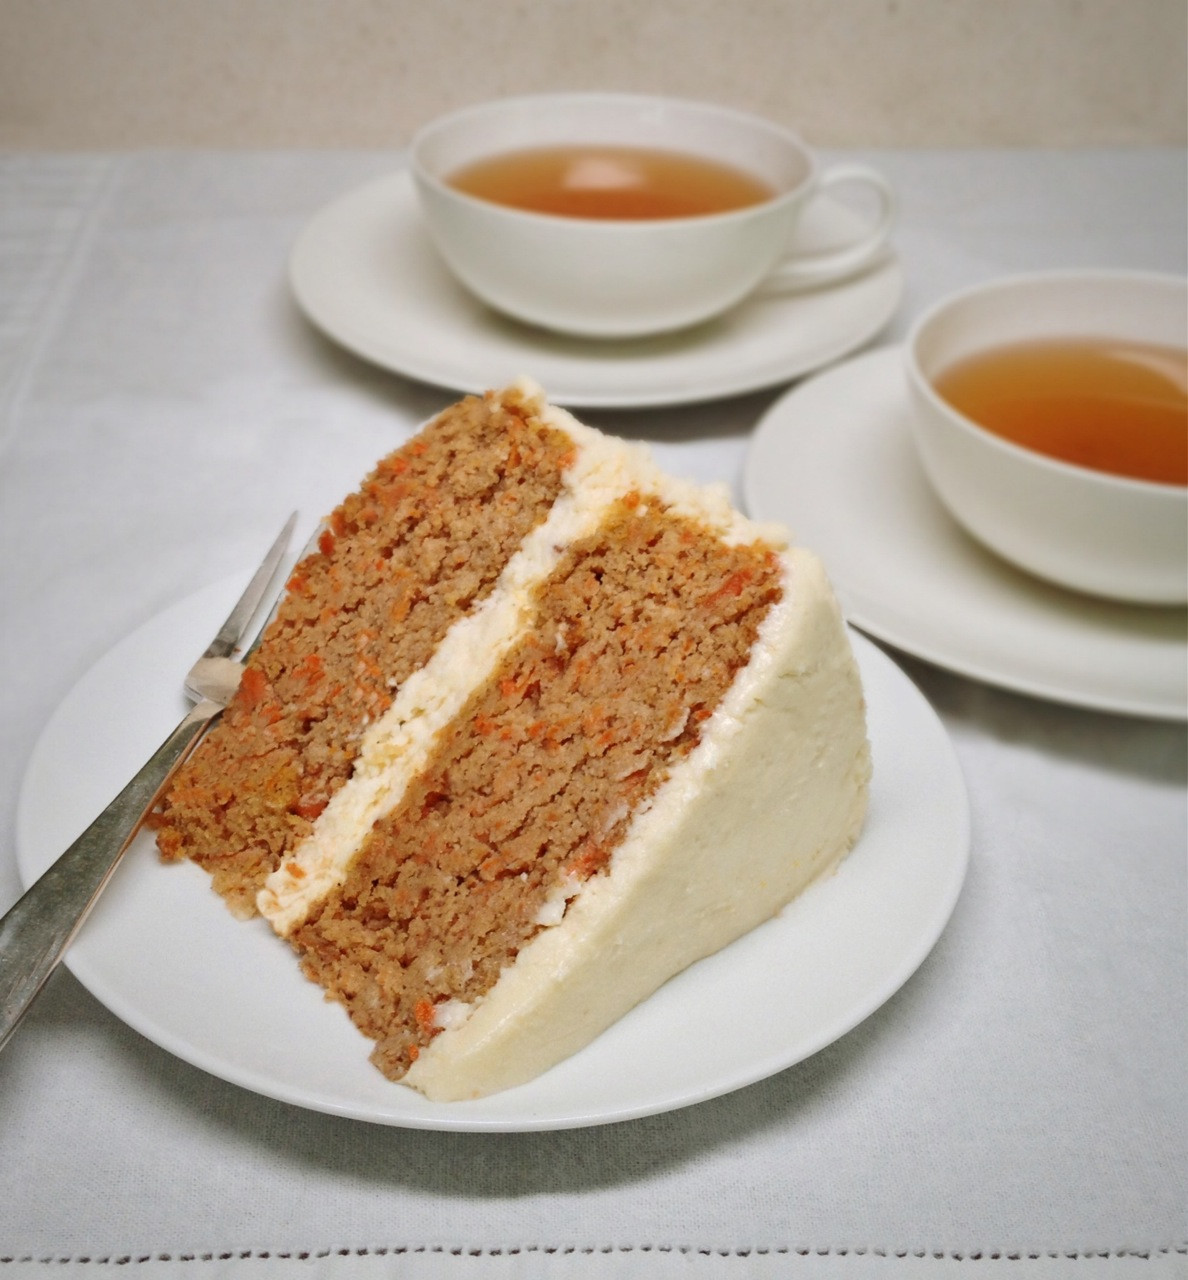 Sugar Free Cake Recipe  These 50 Sugar Free Desserts Are Full of Flavor and Diet